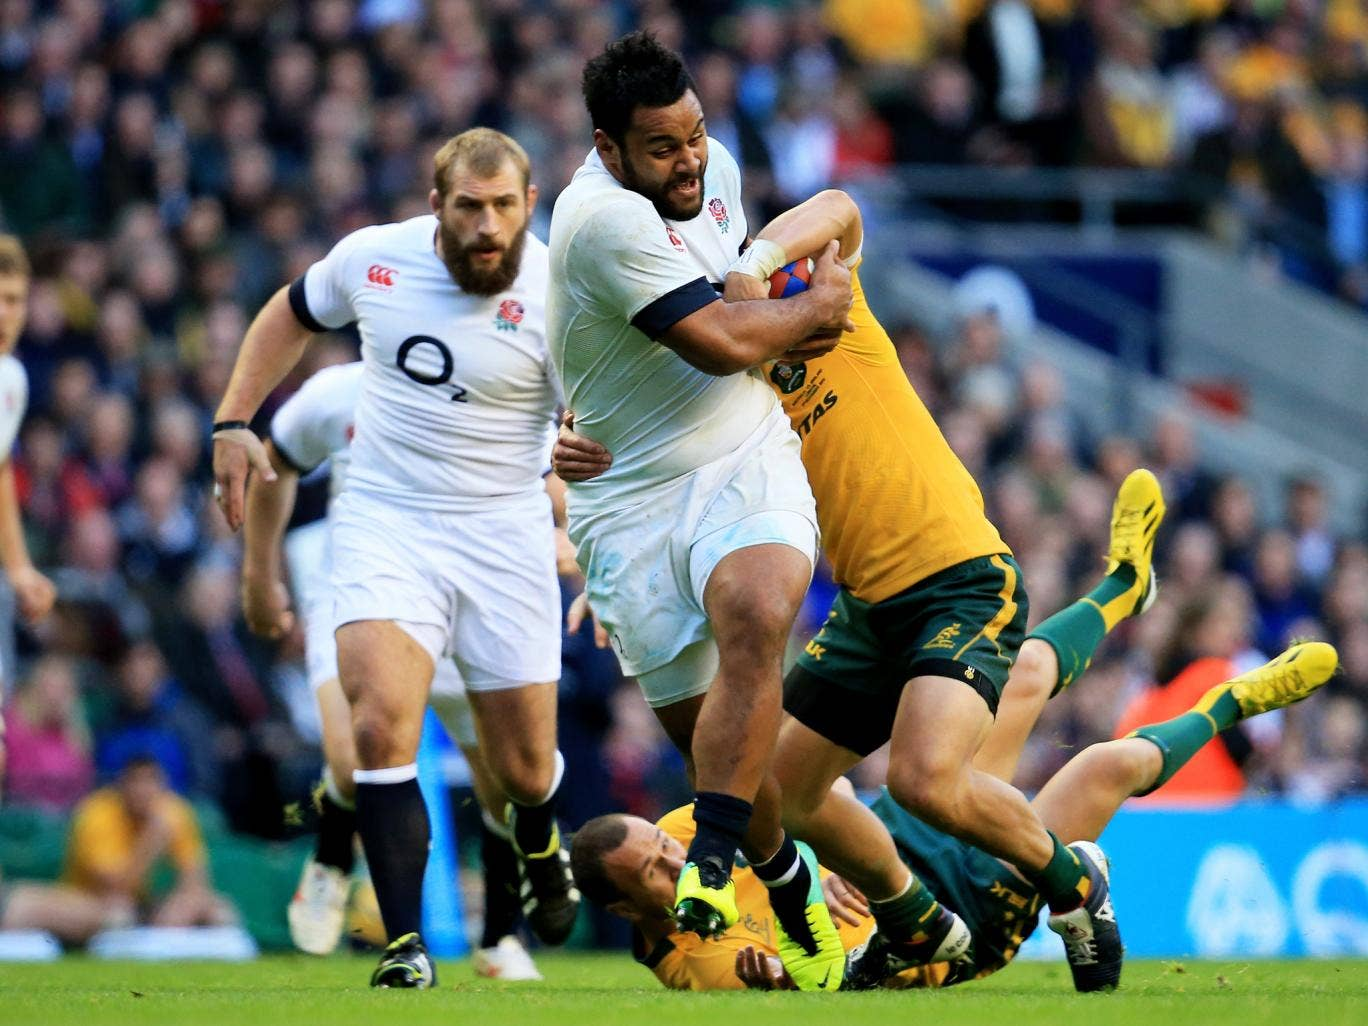 England number eight Billy Vunipola breaks clear of the Australian defence